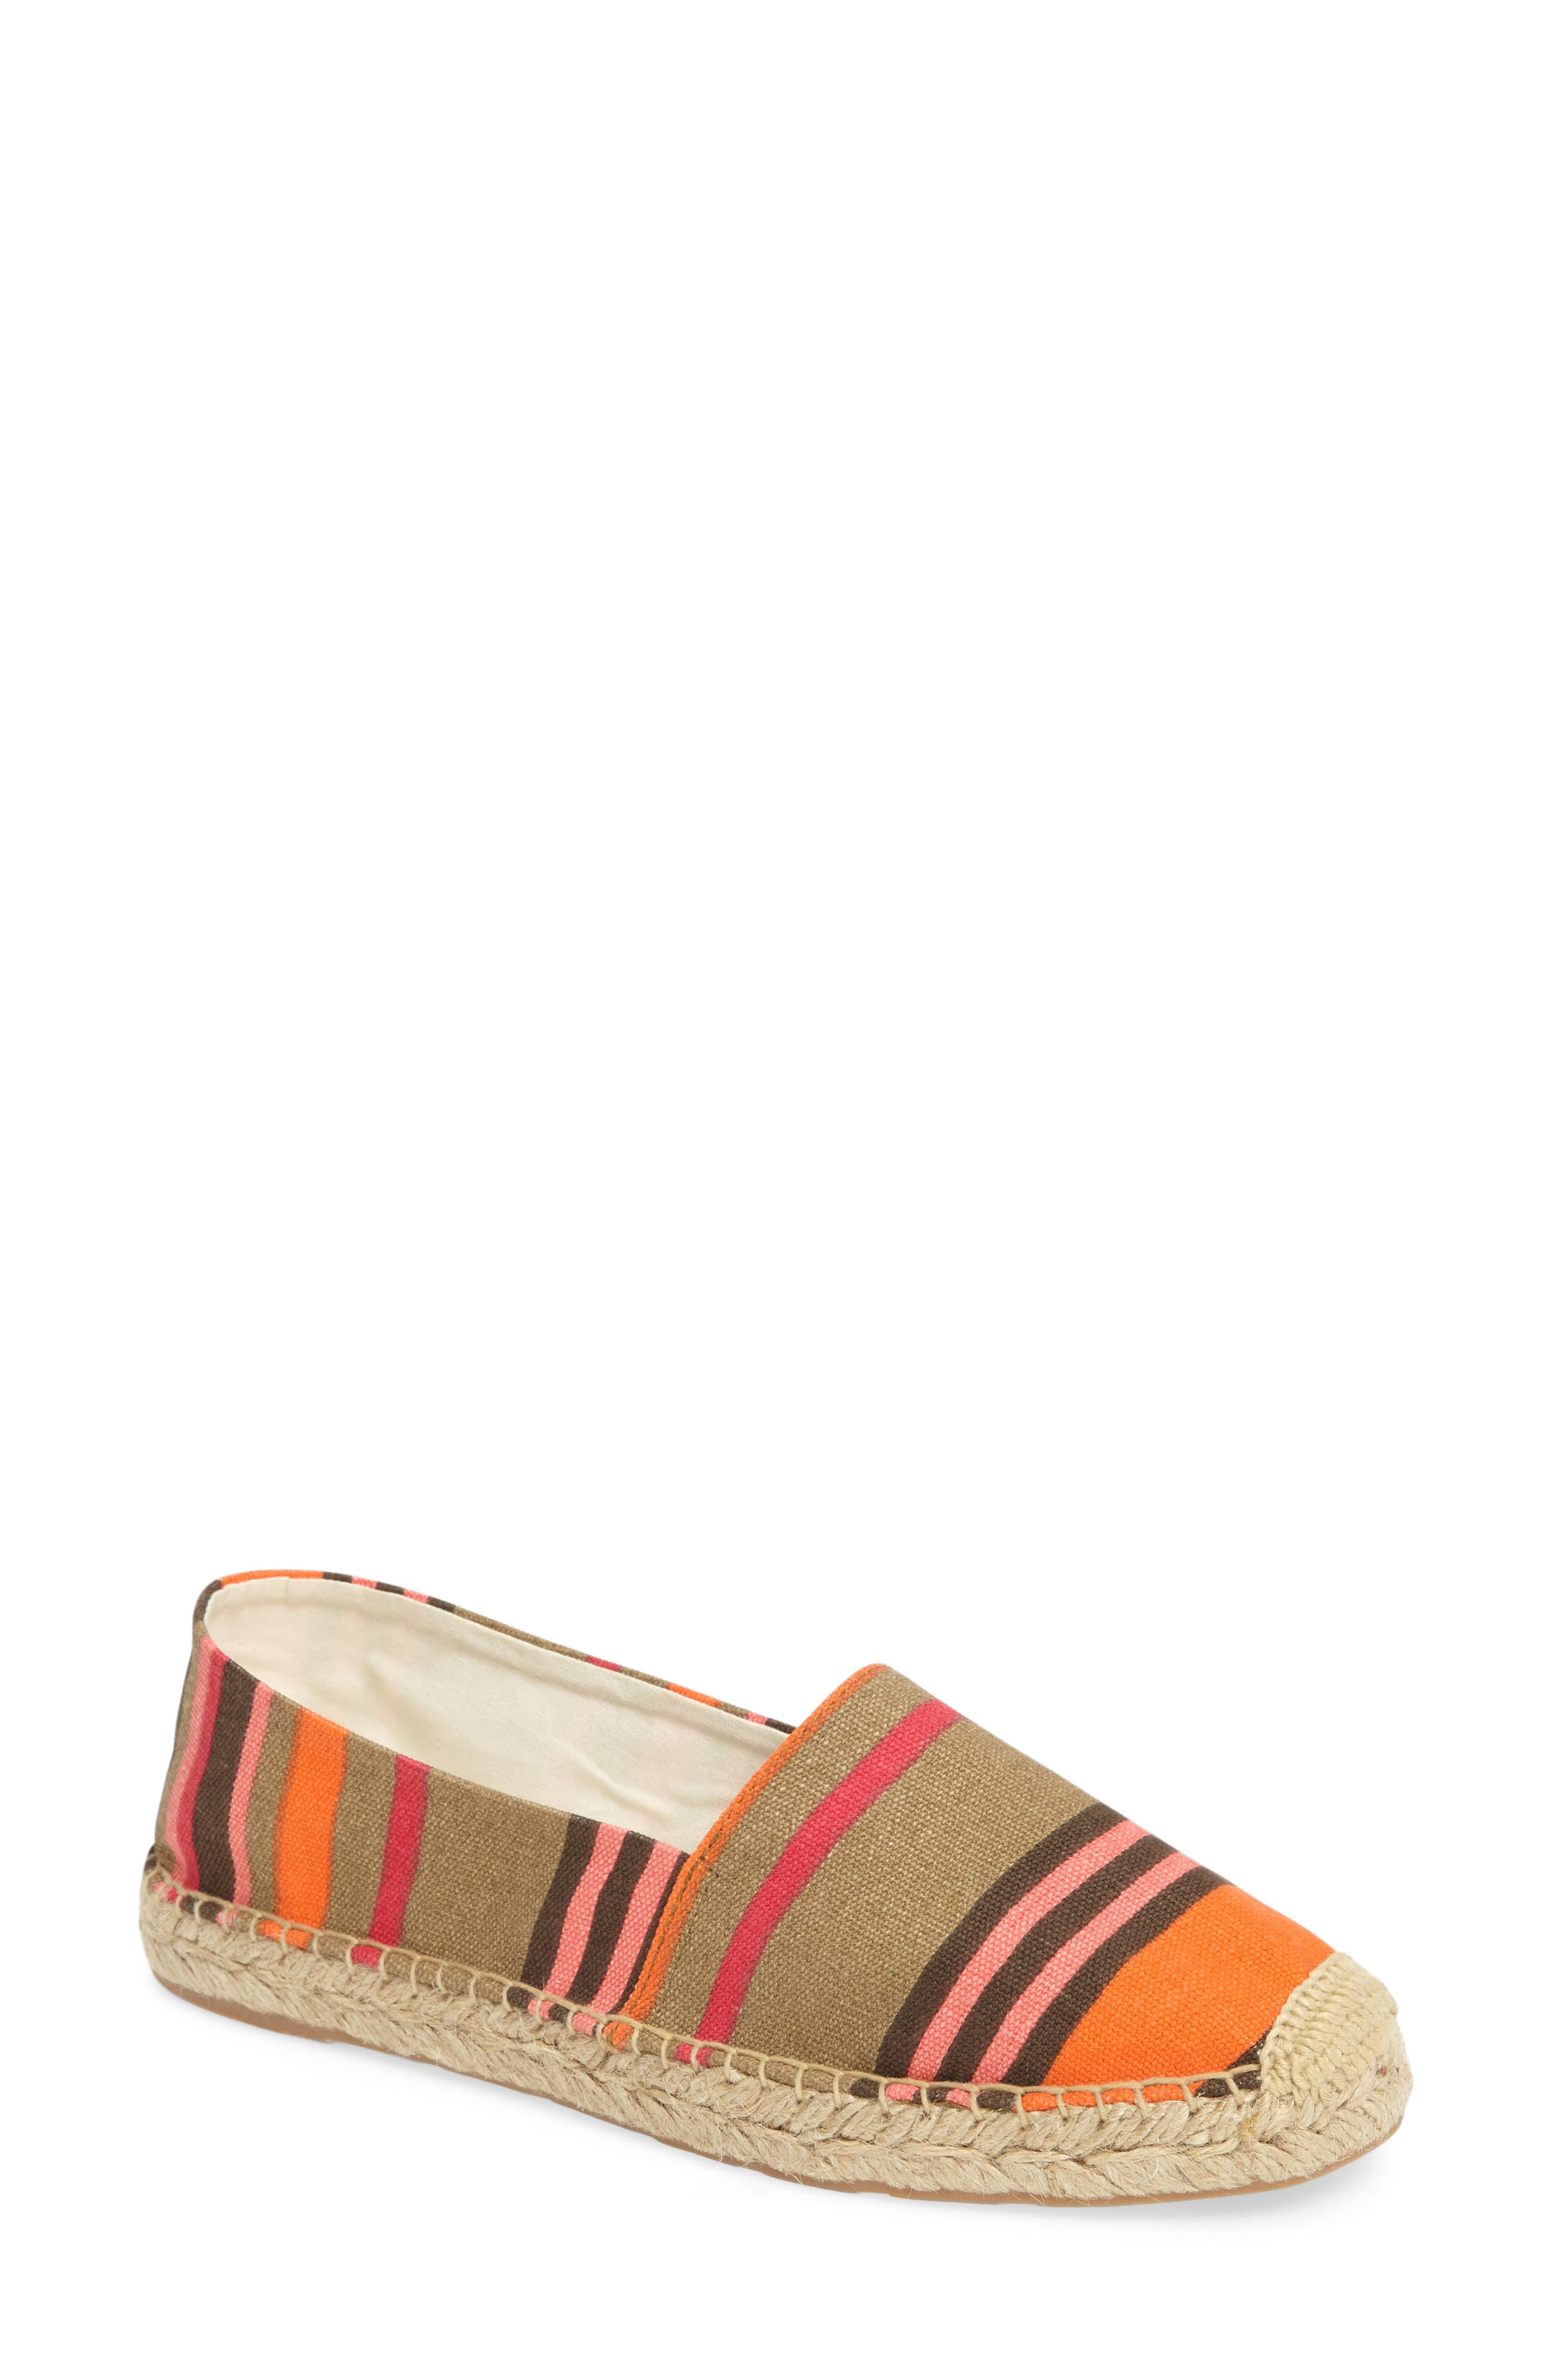 Alternate Image 1 Selected - Sam Edelman Verona Espadrille (Women)